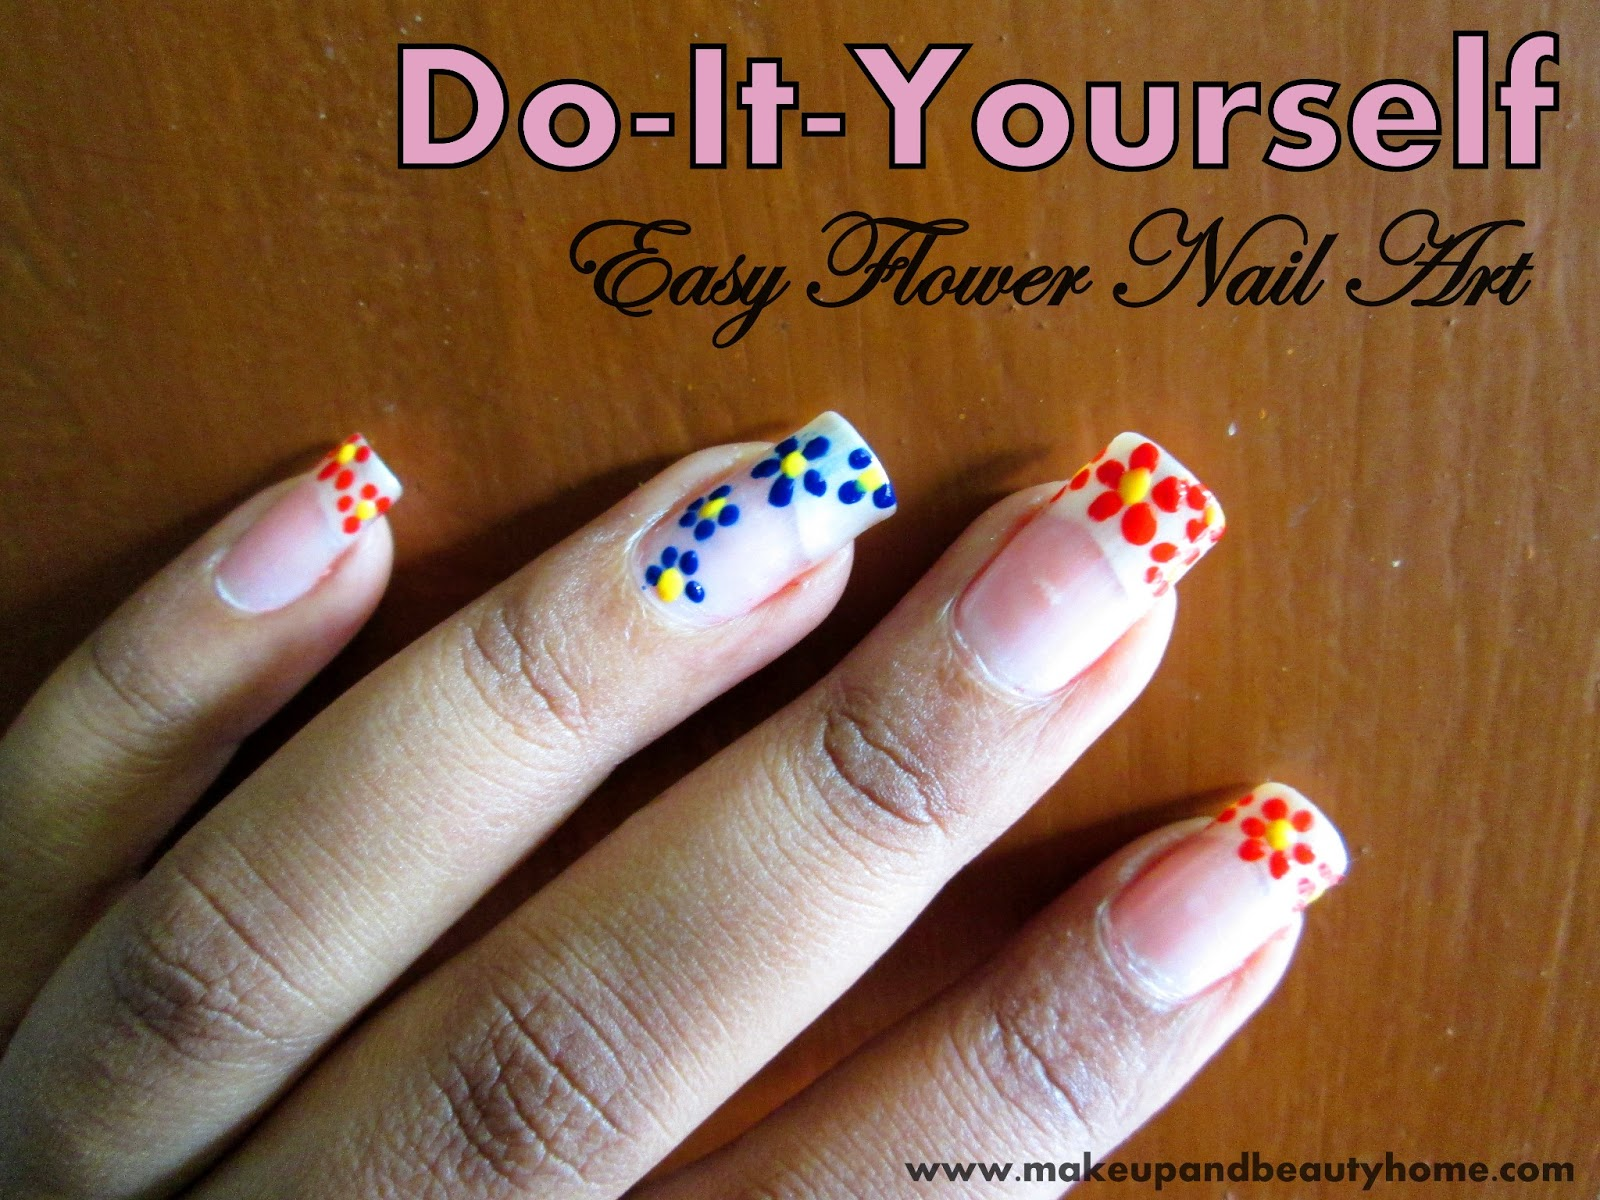 Do It Yourself Easy Flower Nail Art : 6 Easy Steps - Blog ...Easy Nail Designs You Can Do At Home Step By Step